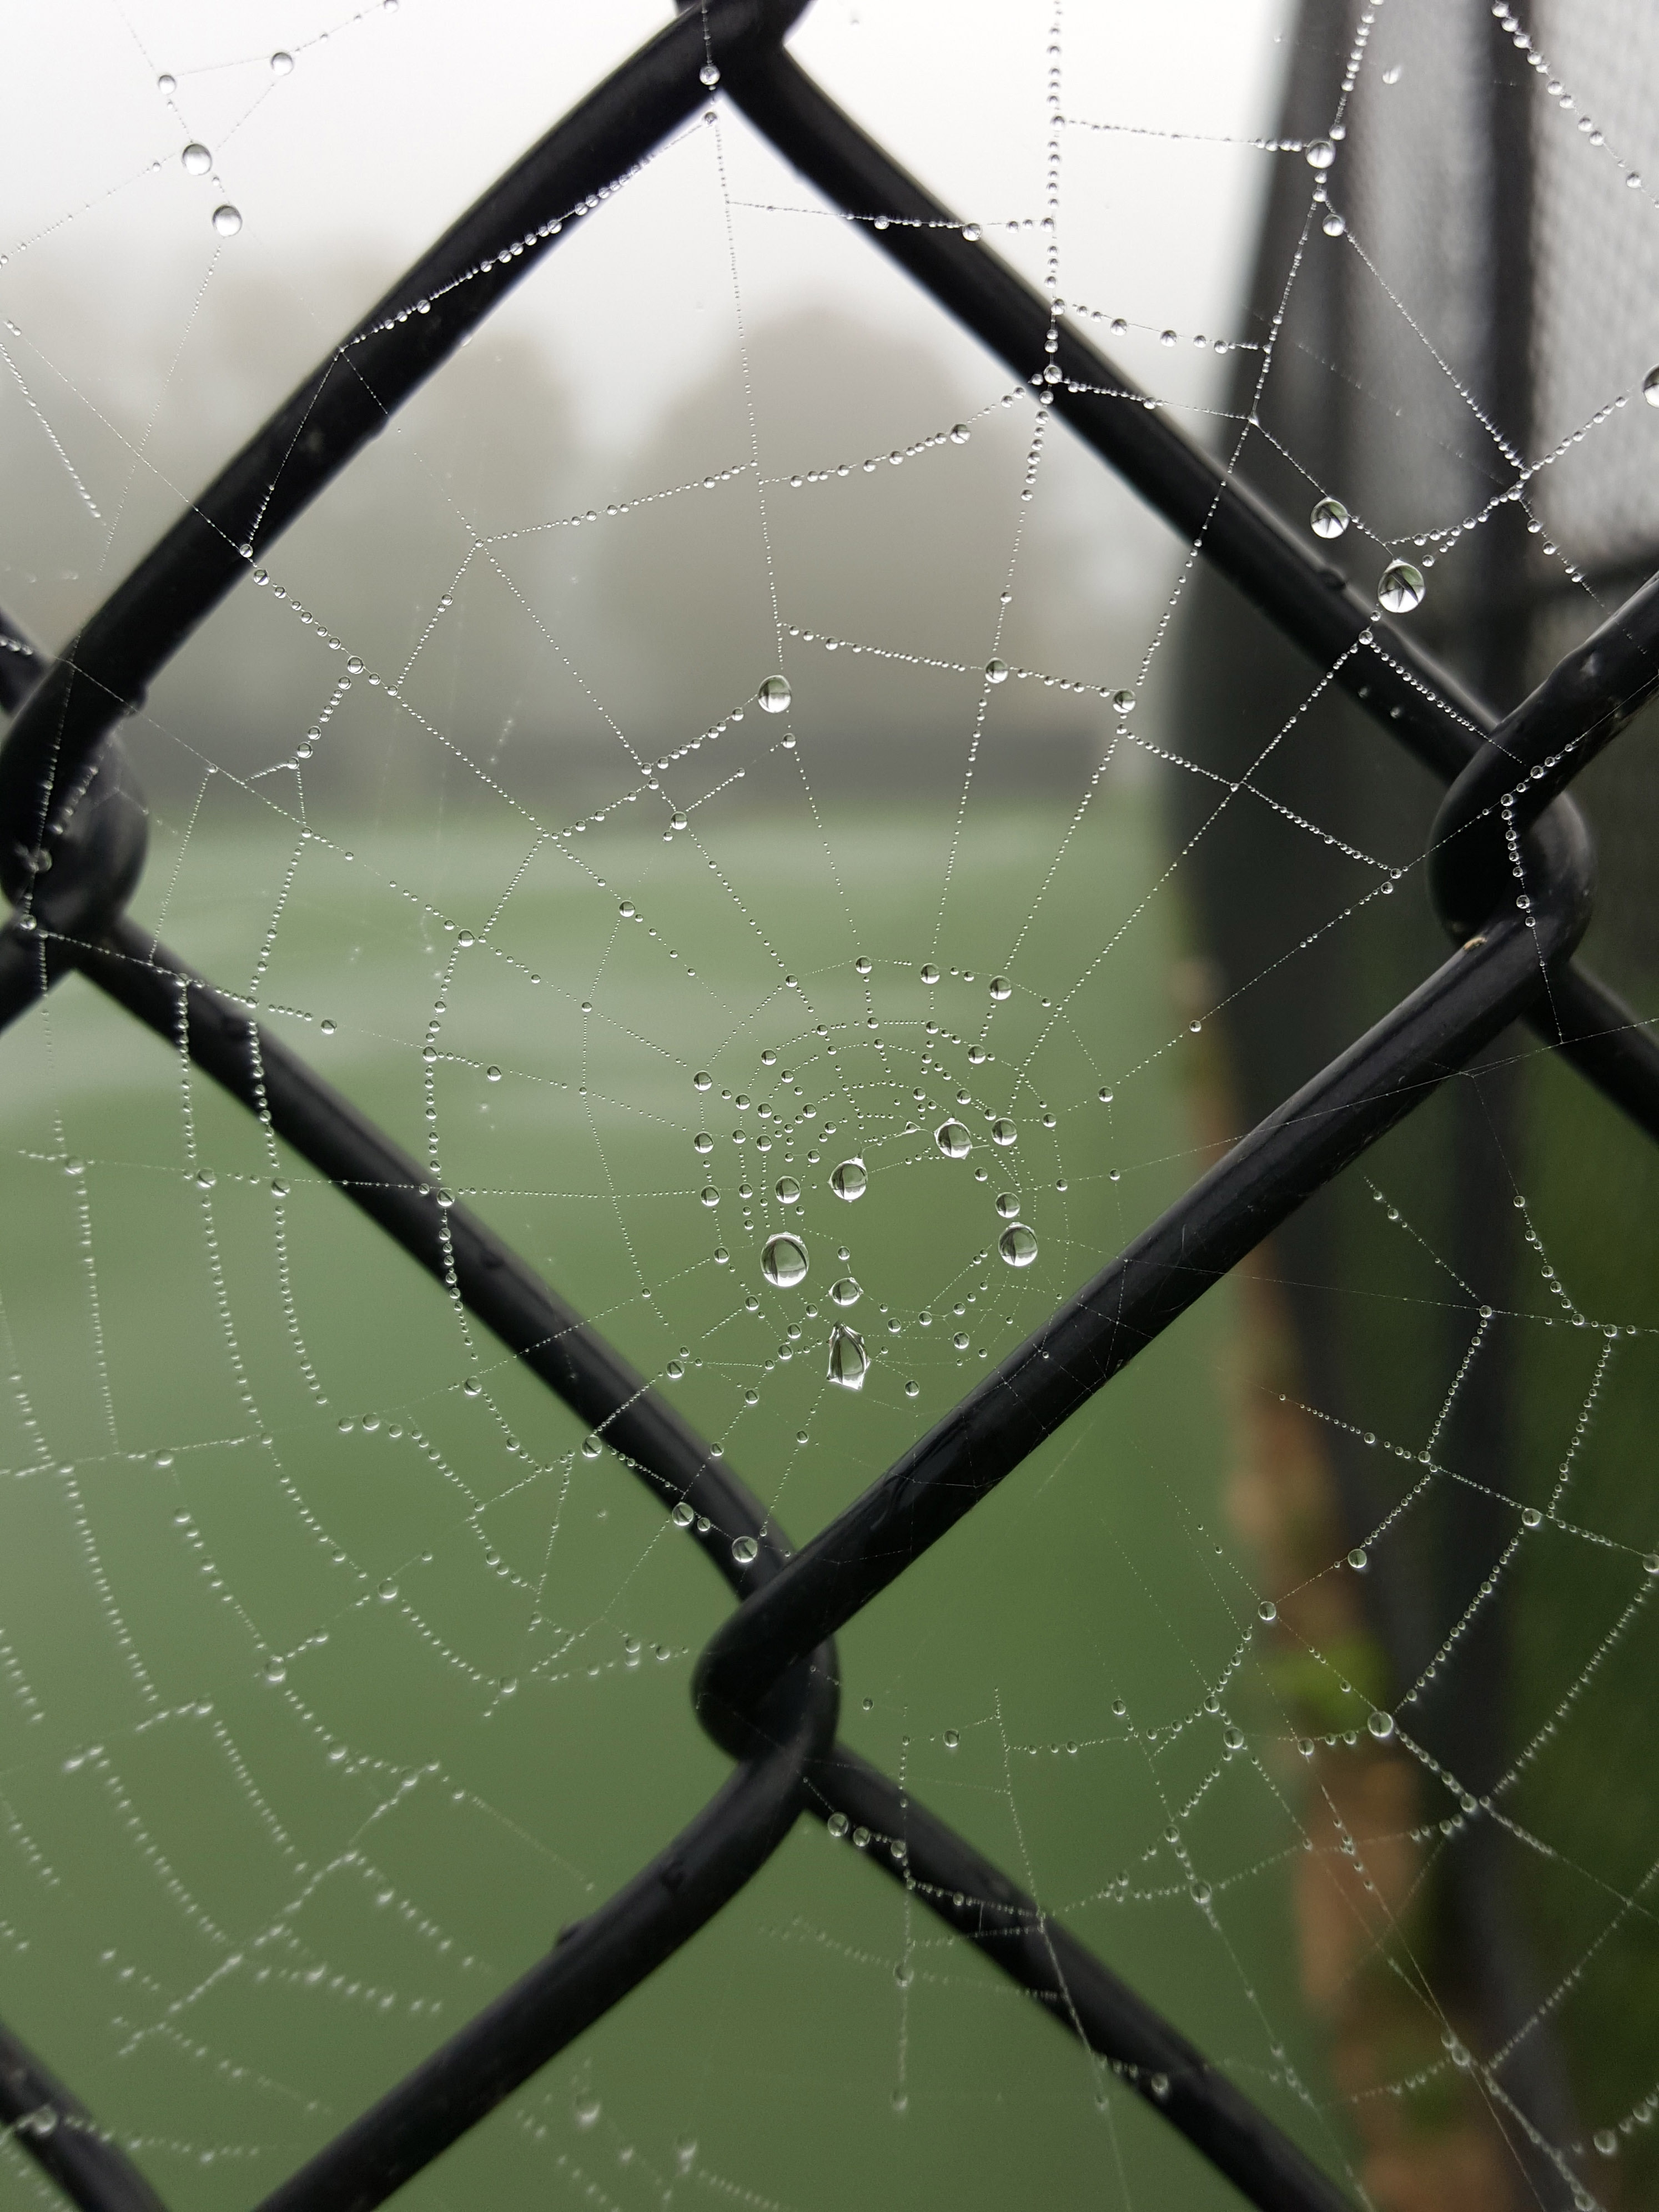 Rain-filled spiderweb in the fog. #spiderweb #raindrops #fog | https://www.roseclearfield.com